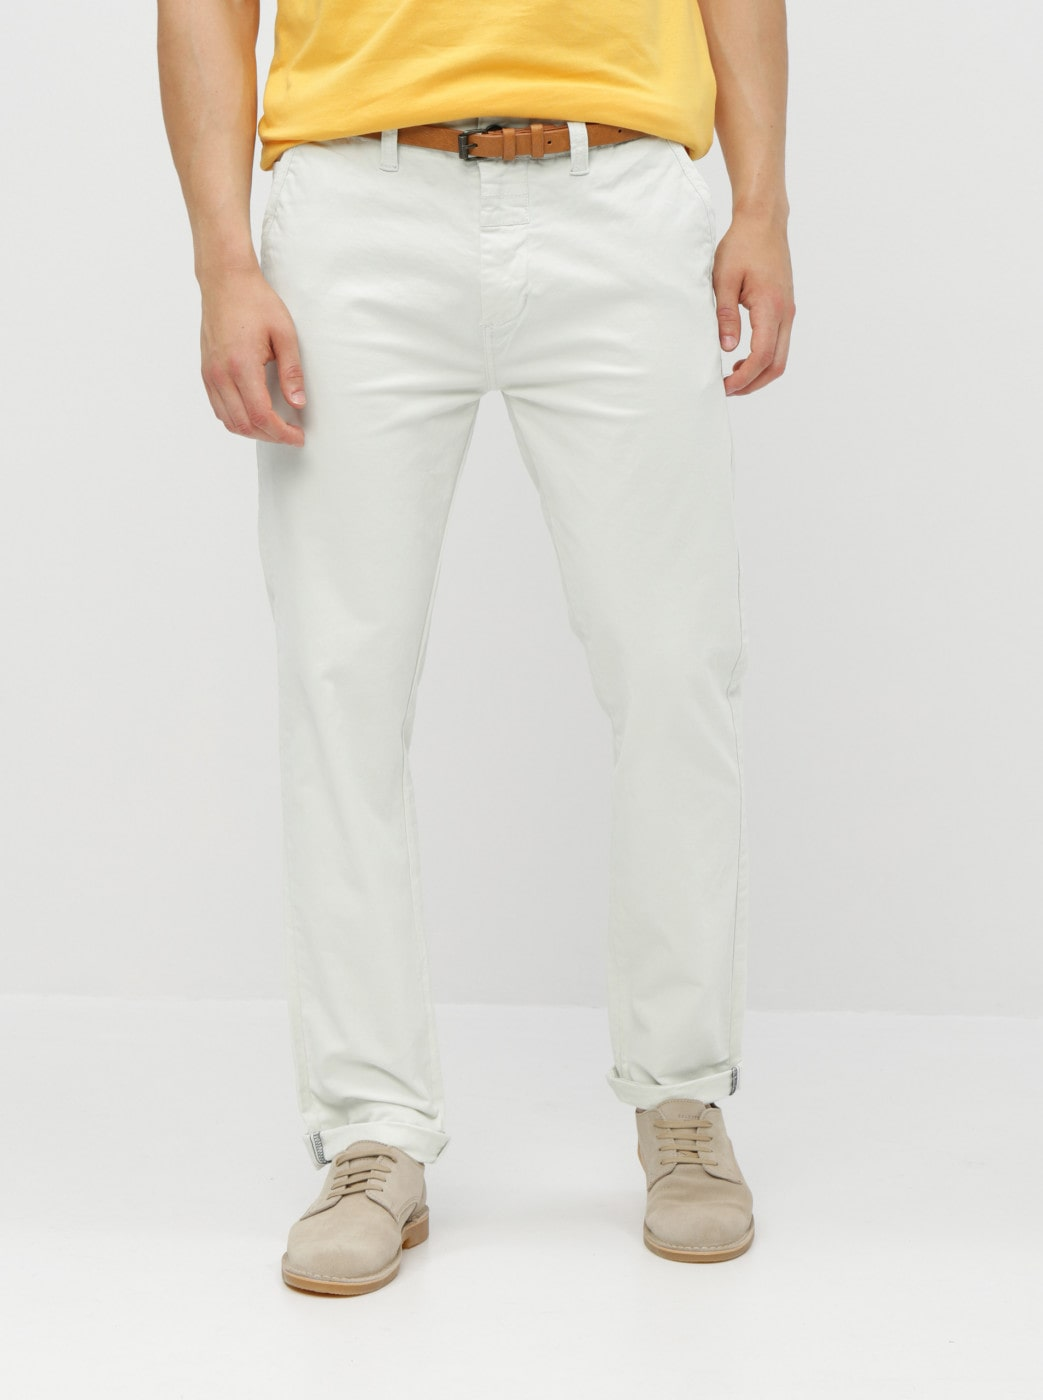 Cream chino pants with a dstrezzed presley belt